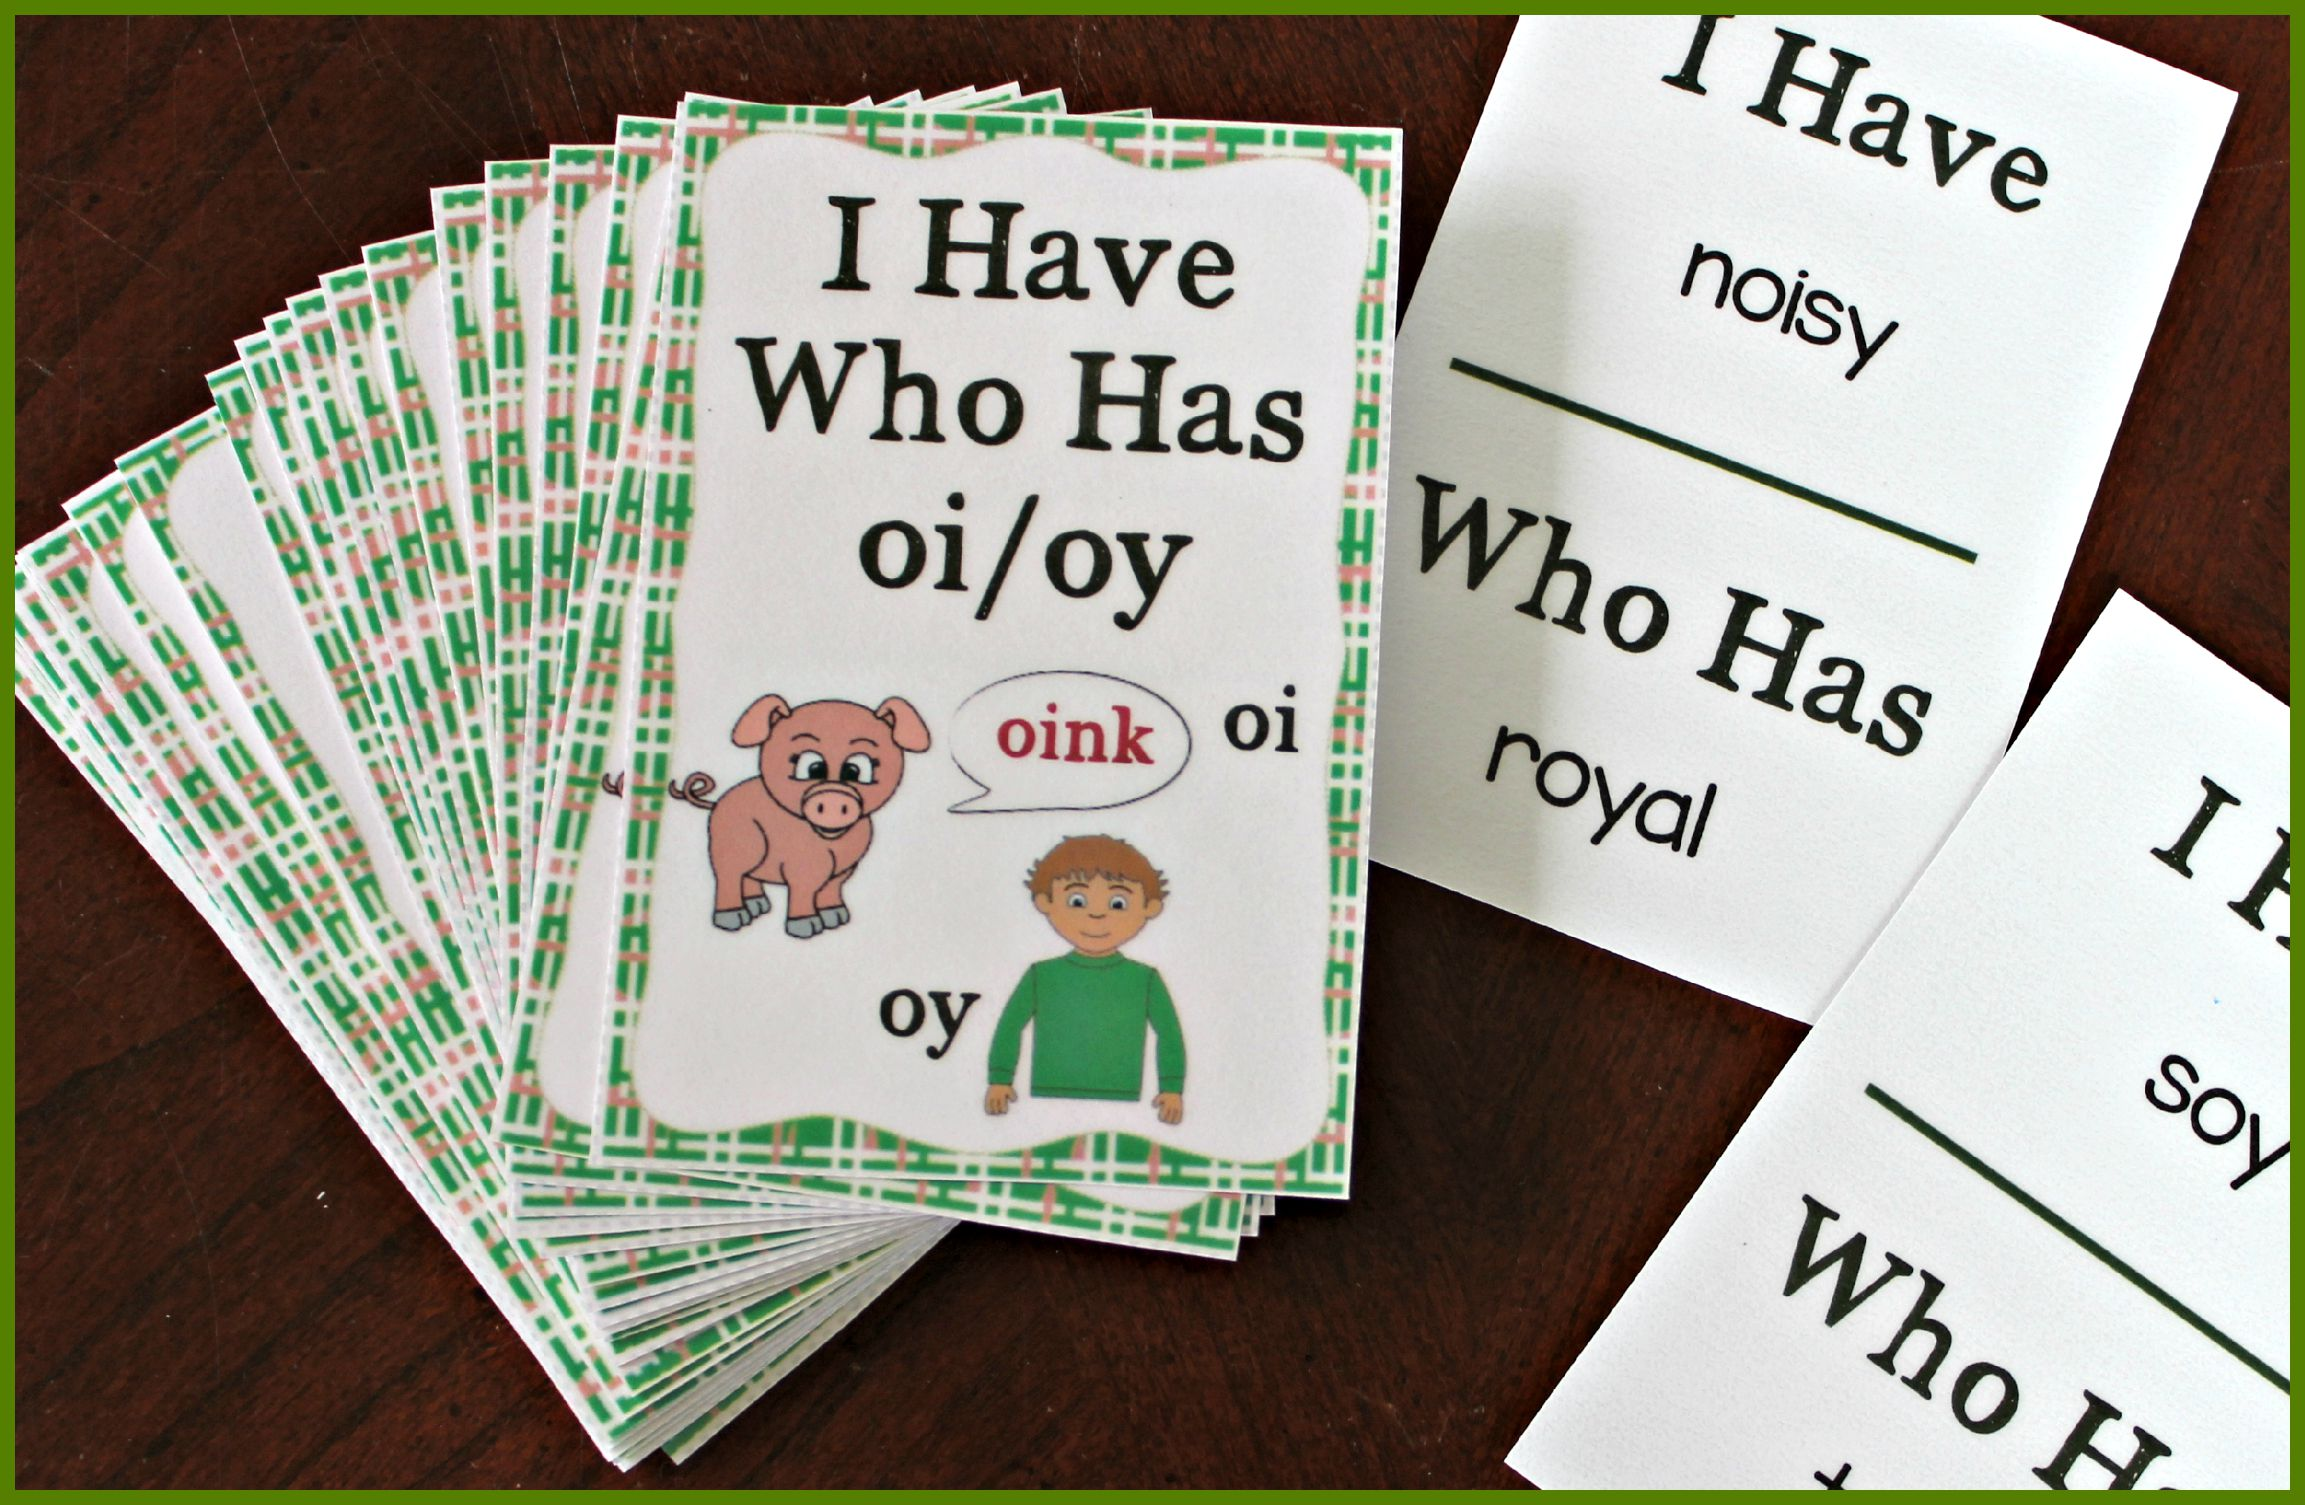 Oa Ow Oe File Folder Word Sorting Activity Great Way To